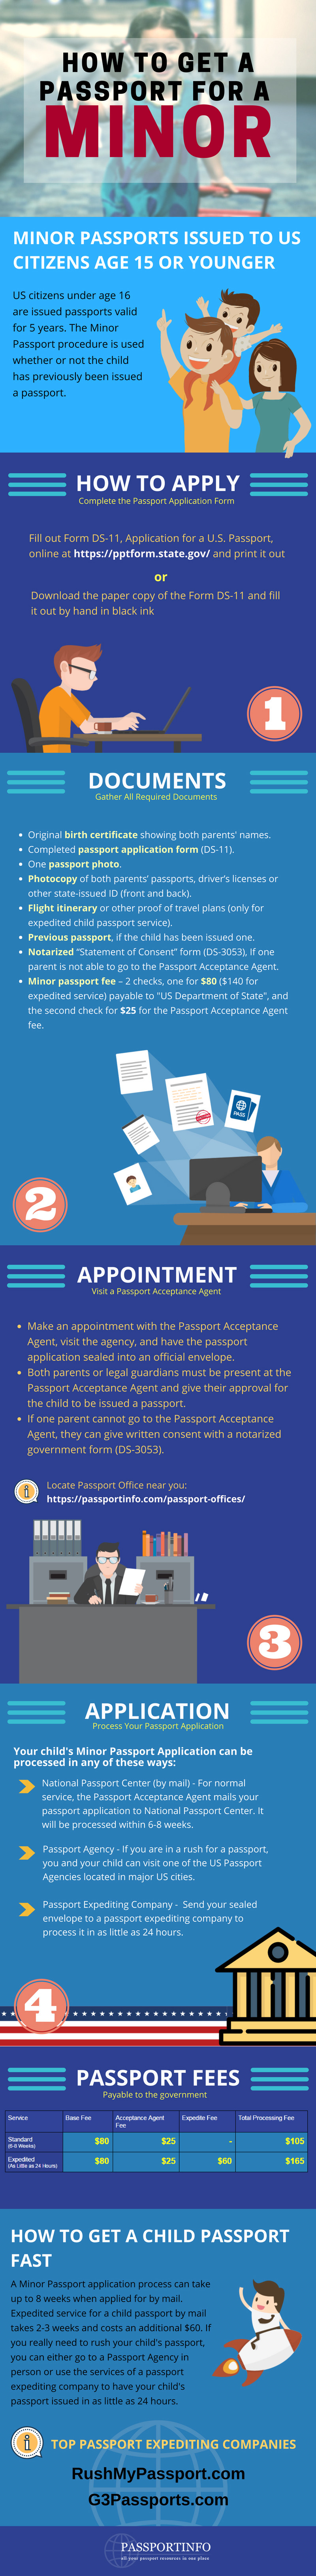 How to apply for a minor passport